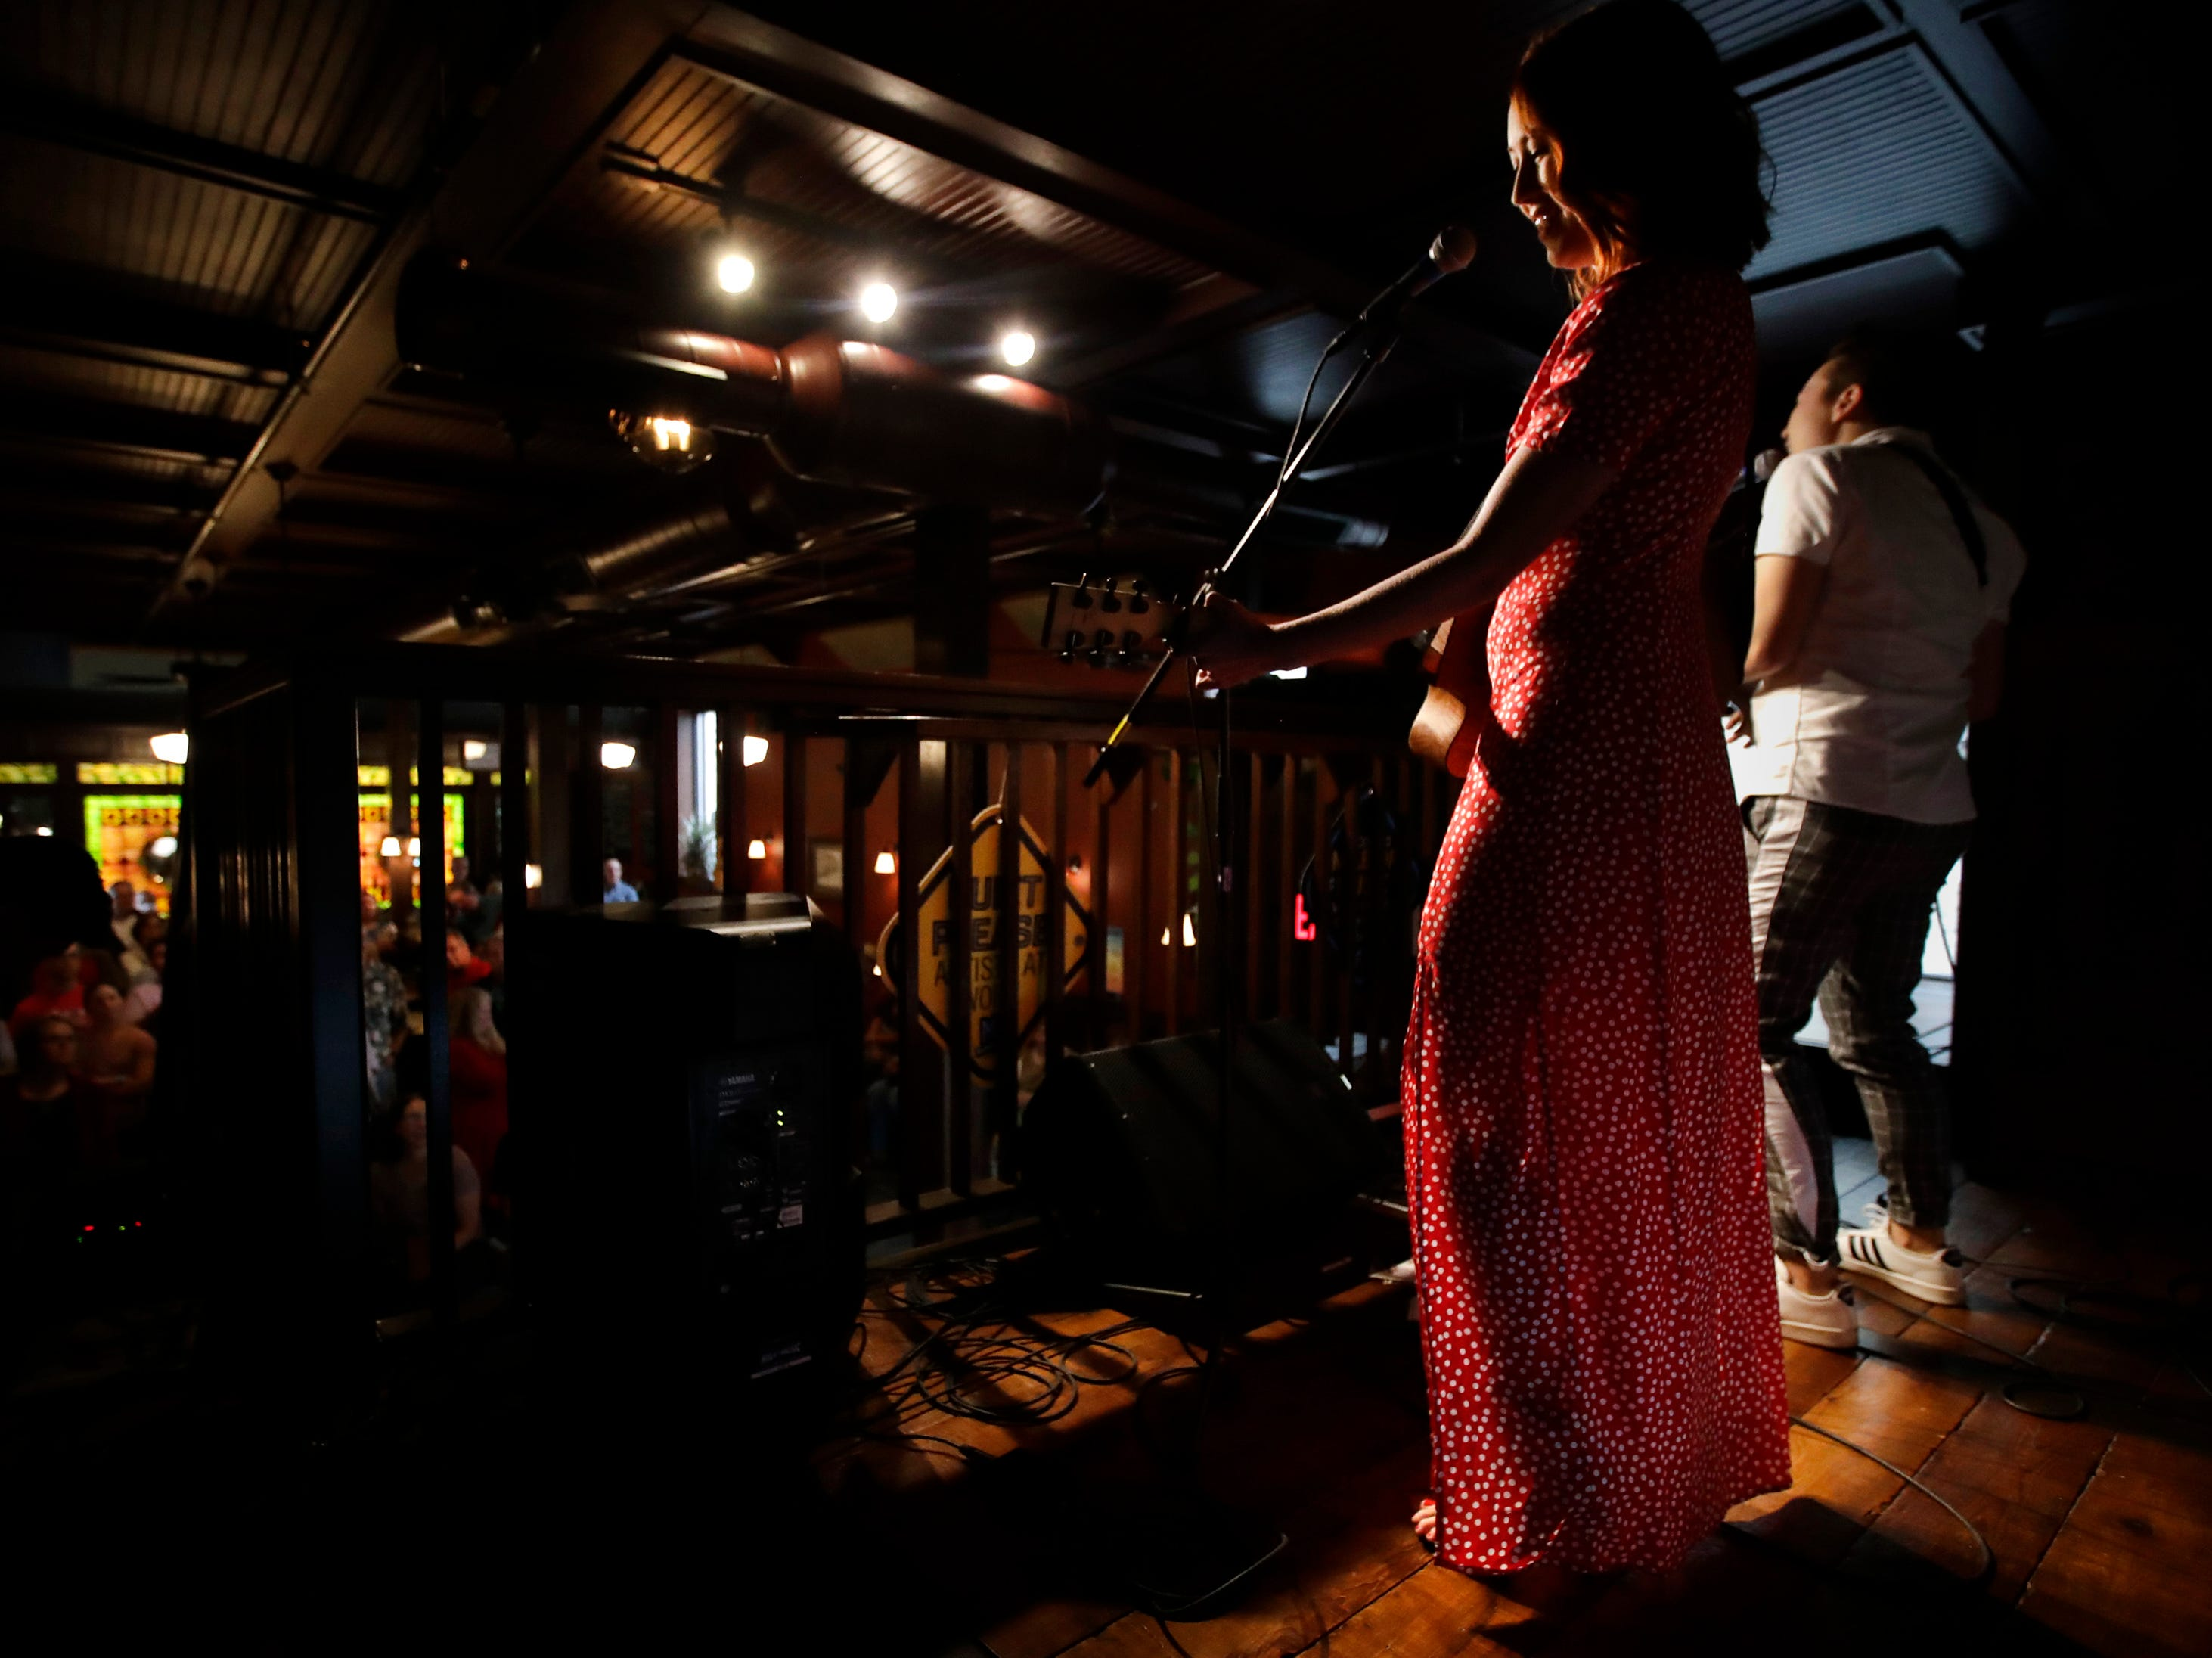 Chasing Lovely performs at McFleshman's Brewing Co. during the first day of Mile of Music Thursday, Aug. 2, 2018, in Appleton, Wis.Danny Damiani/USA TODAY NETWORK-Wisconsin